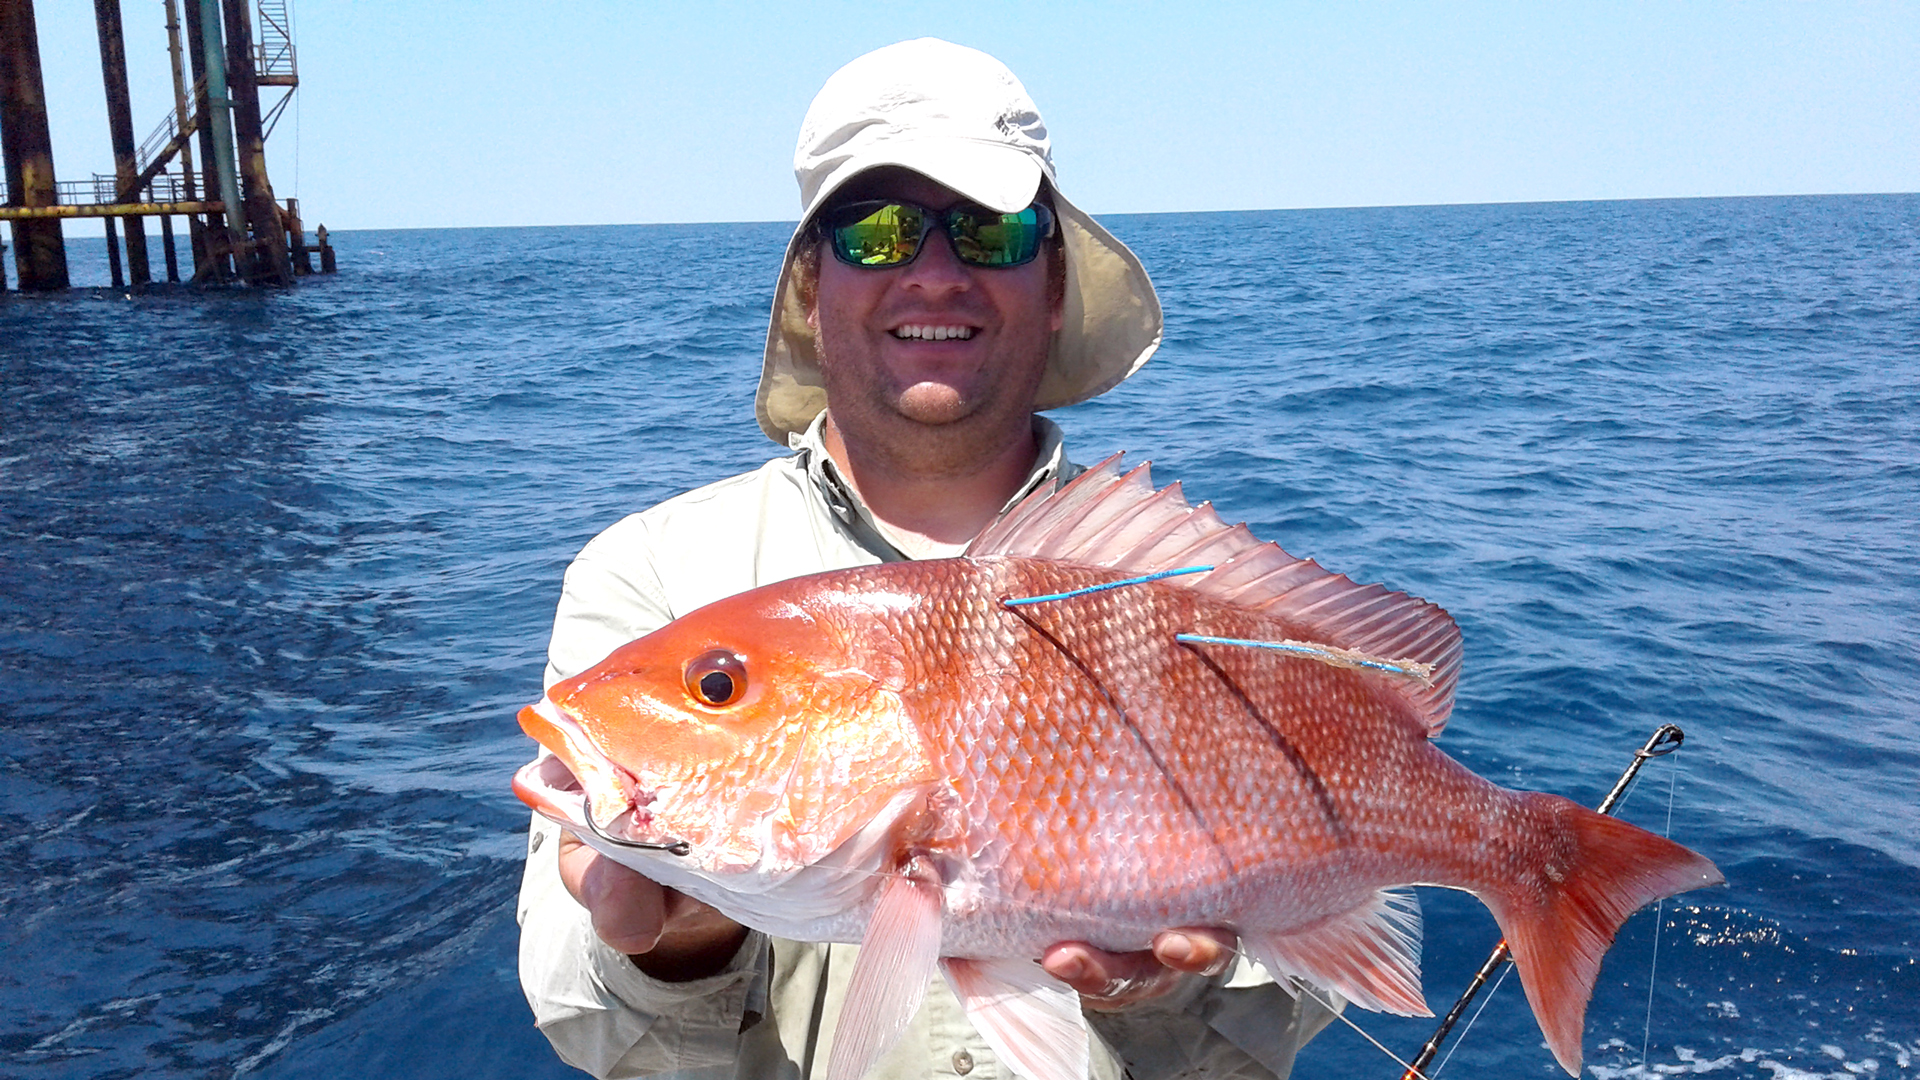 Peter-Mudrak-red-snapper-fish-recapture-in-Gulf-of-Mexico-Ocean-Sunny-Day-near-water-dock-tagged-2020